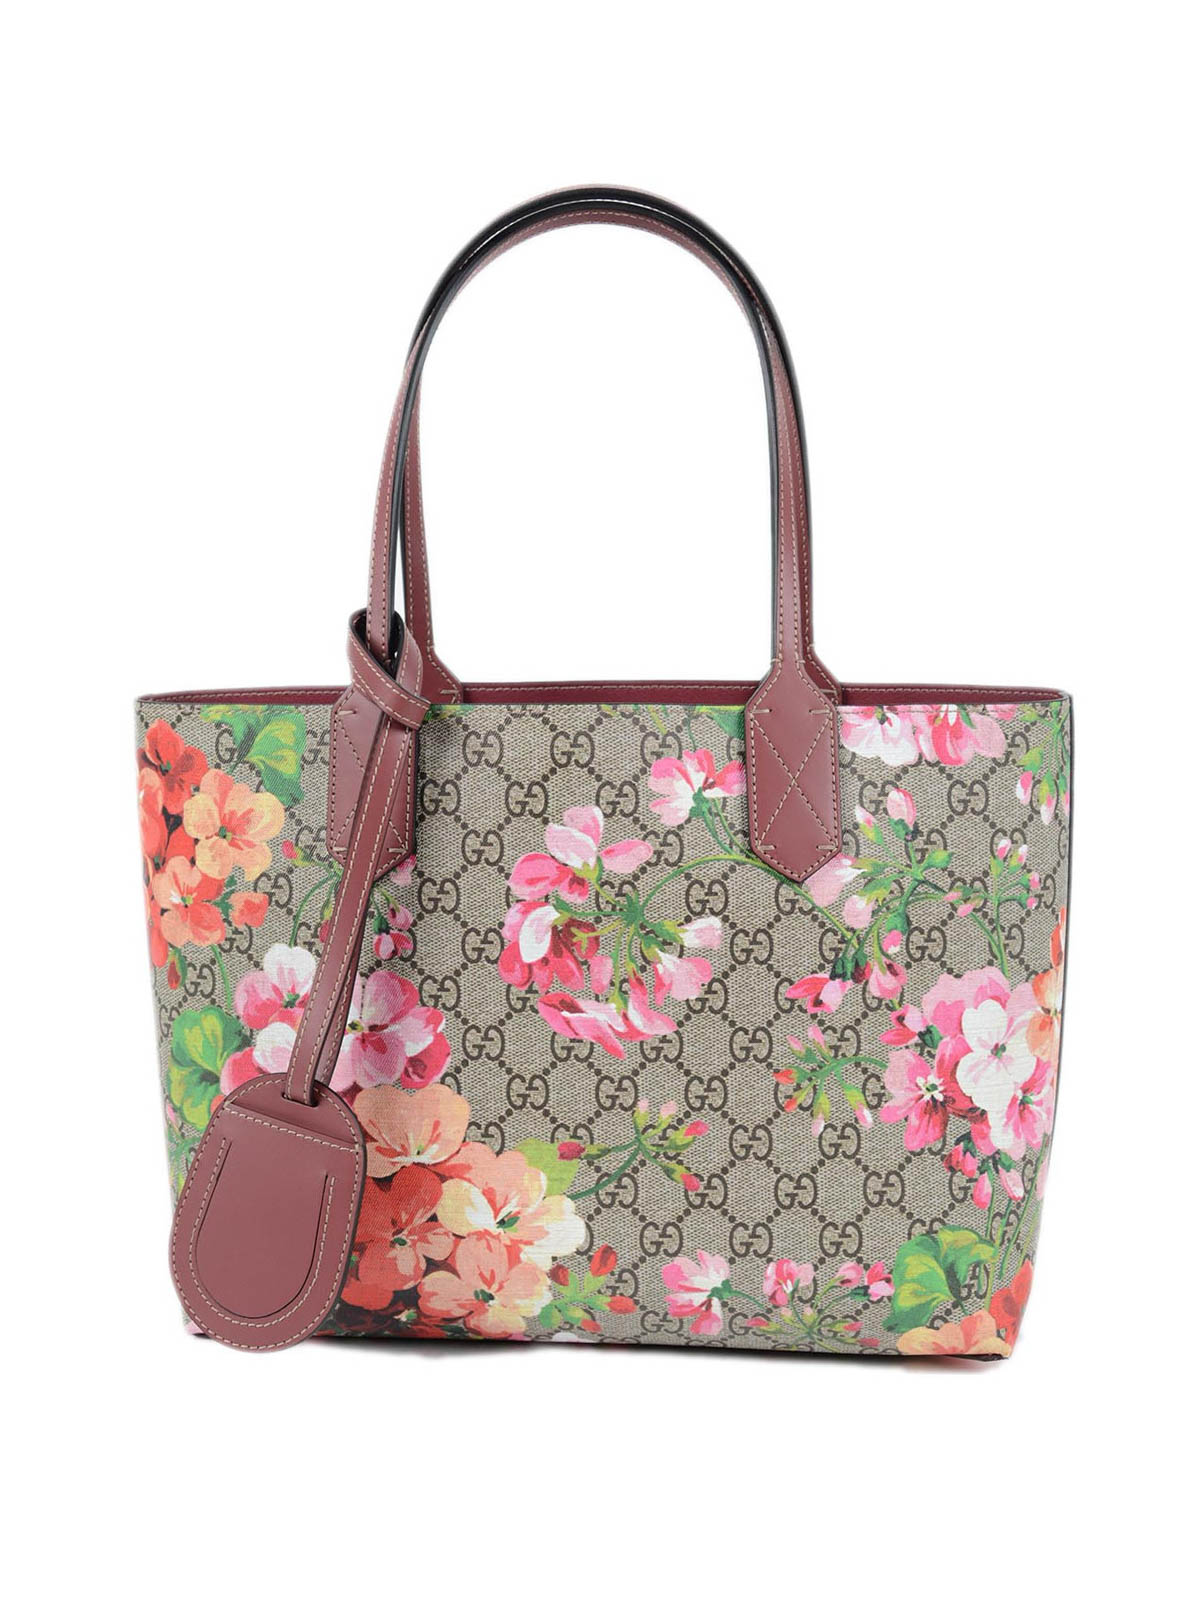 265d322a1184 Gucci - Reversible GG Blooms leather tote - totes bags - 372613 ...